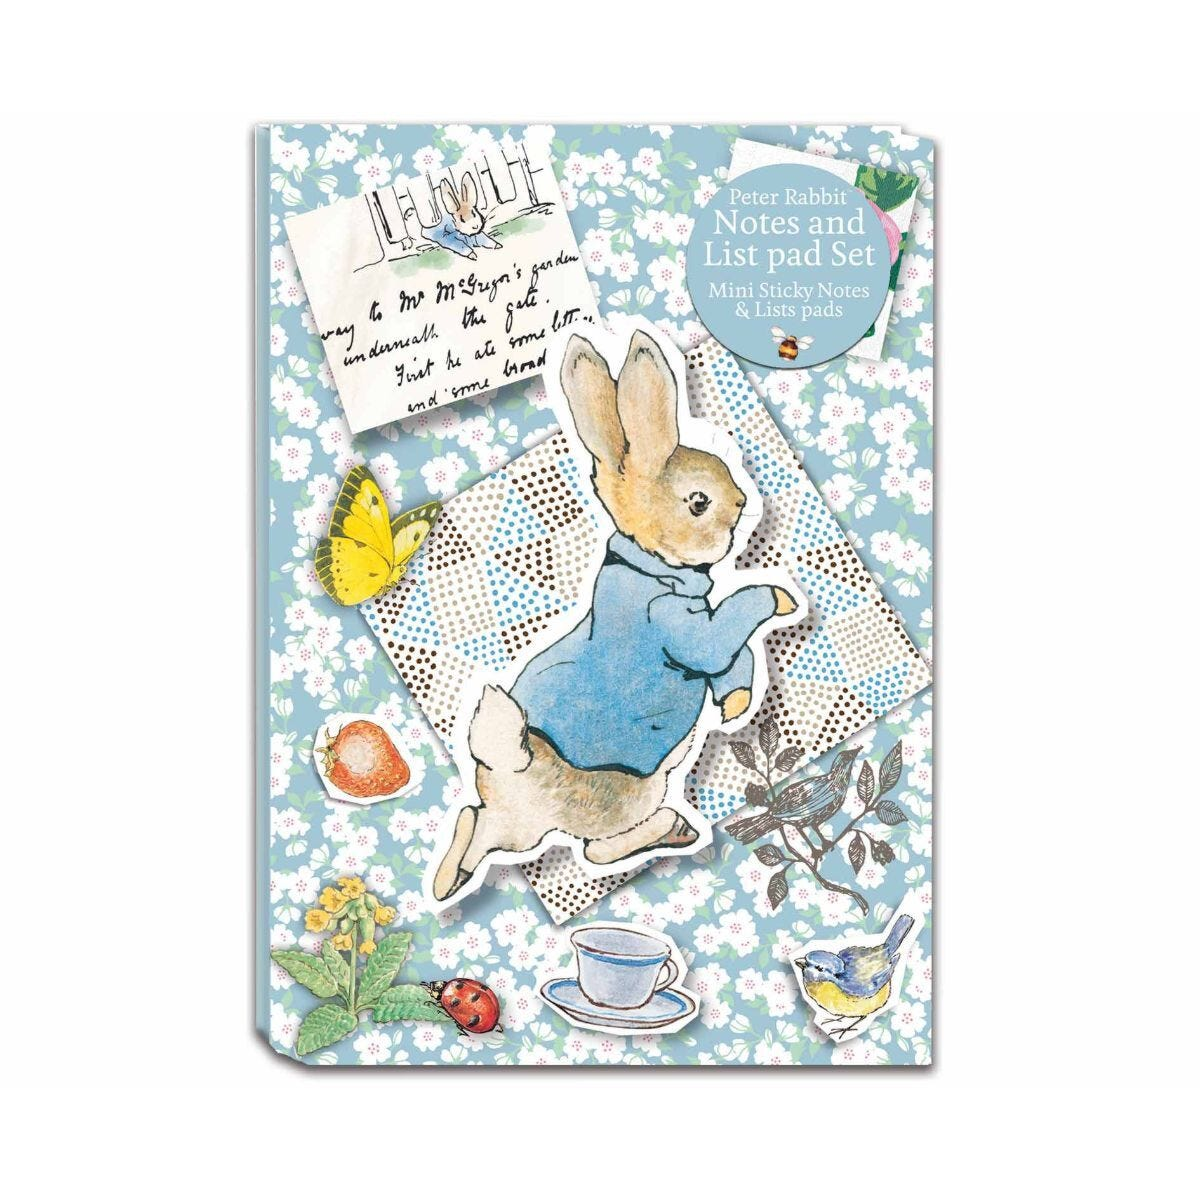 Peter Rabbit Notes and Lists Set